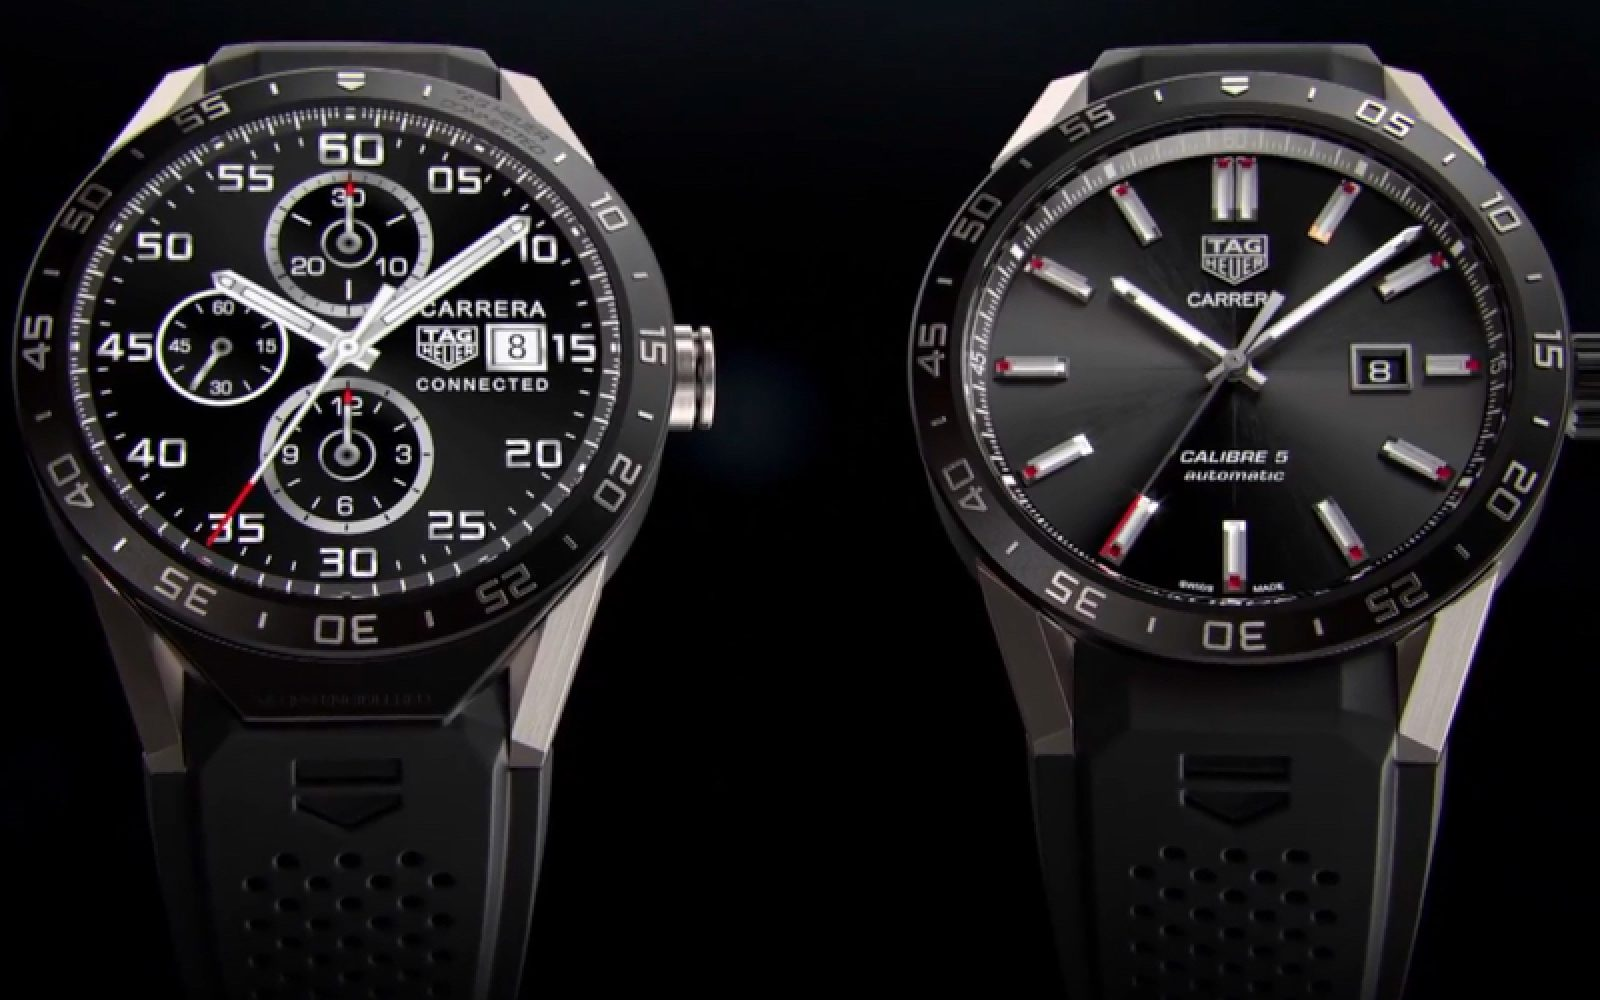 2472c7e255b TAG Heuer Connected Android Wear watch officially announced - 9to5Google